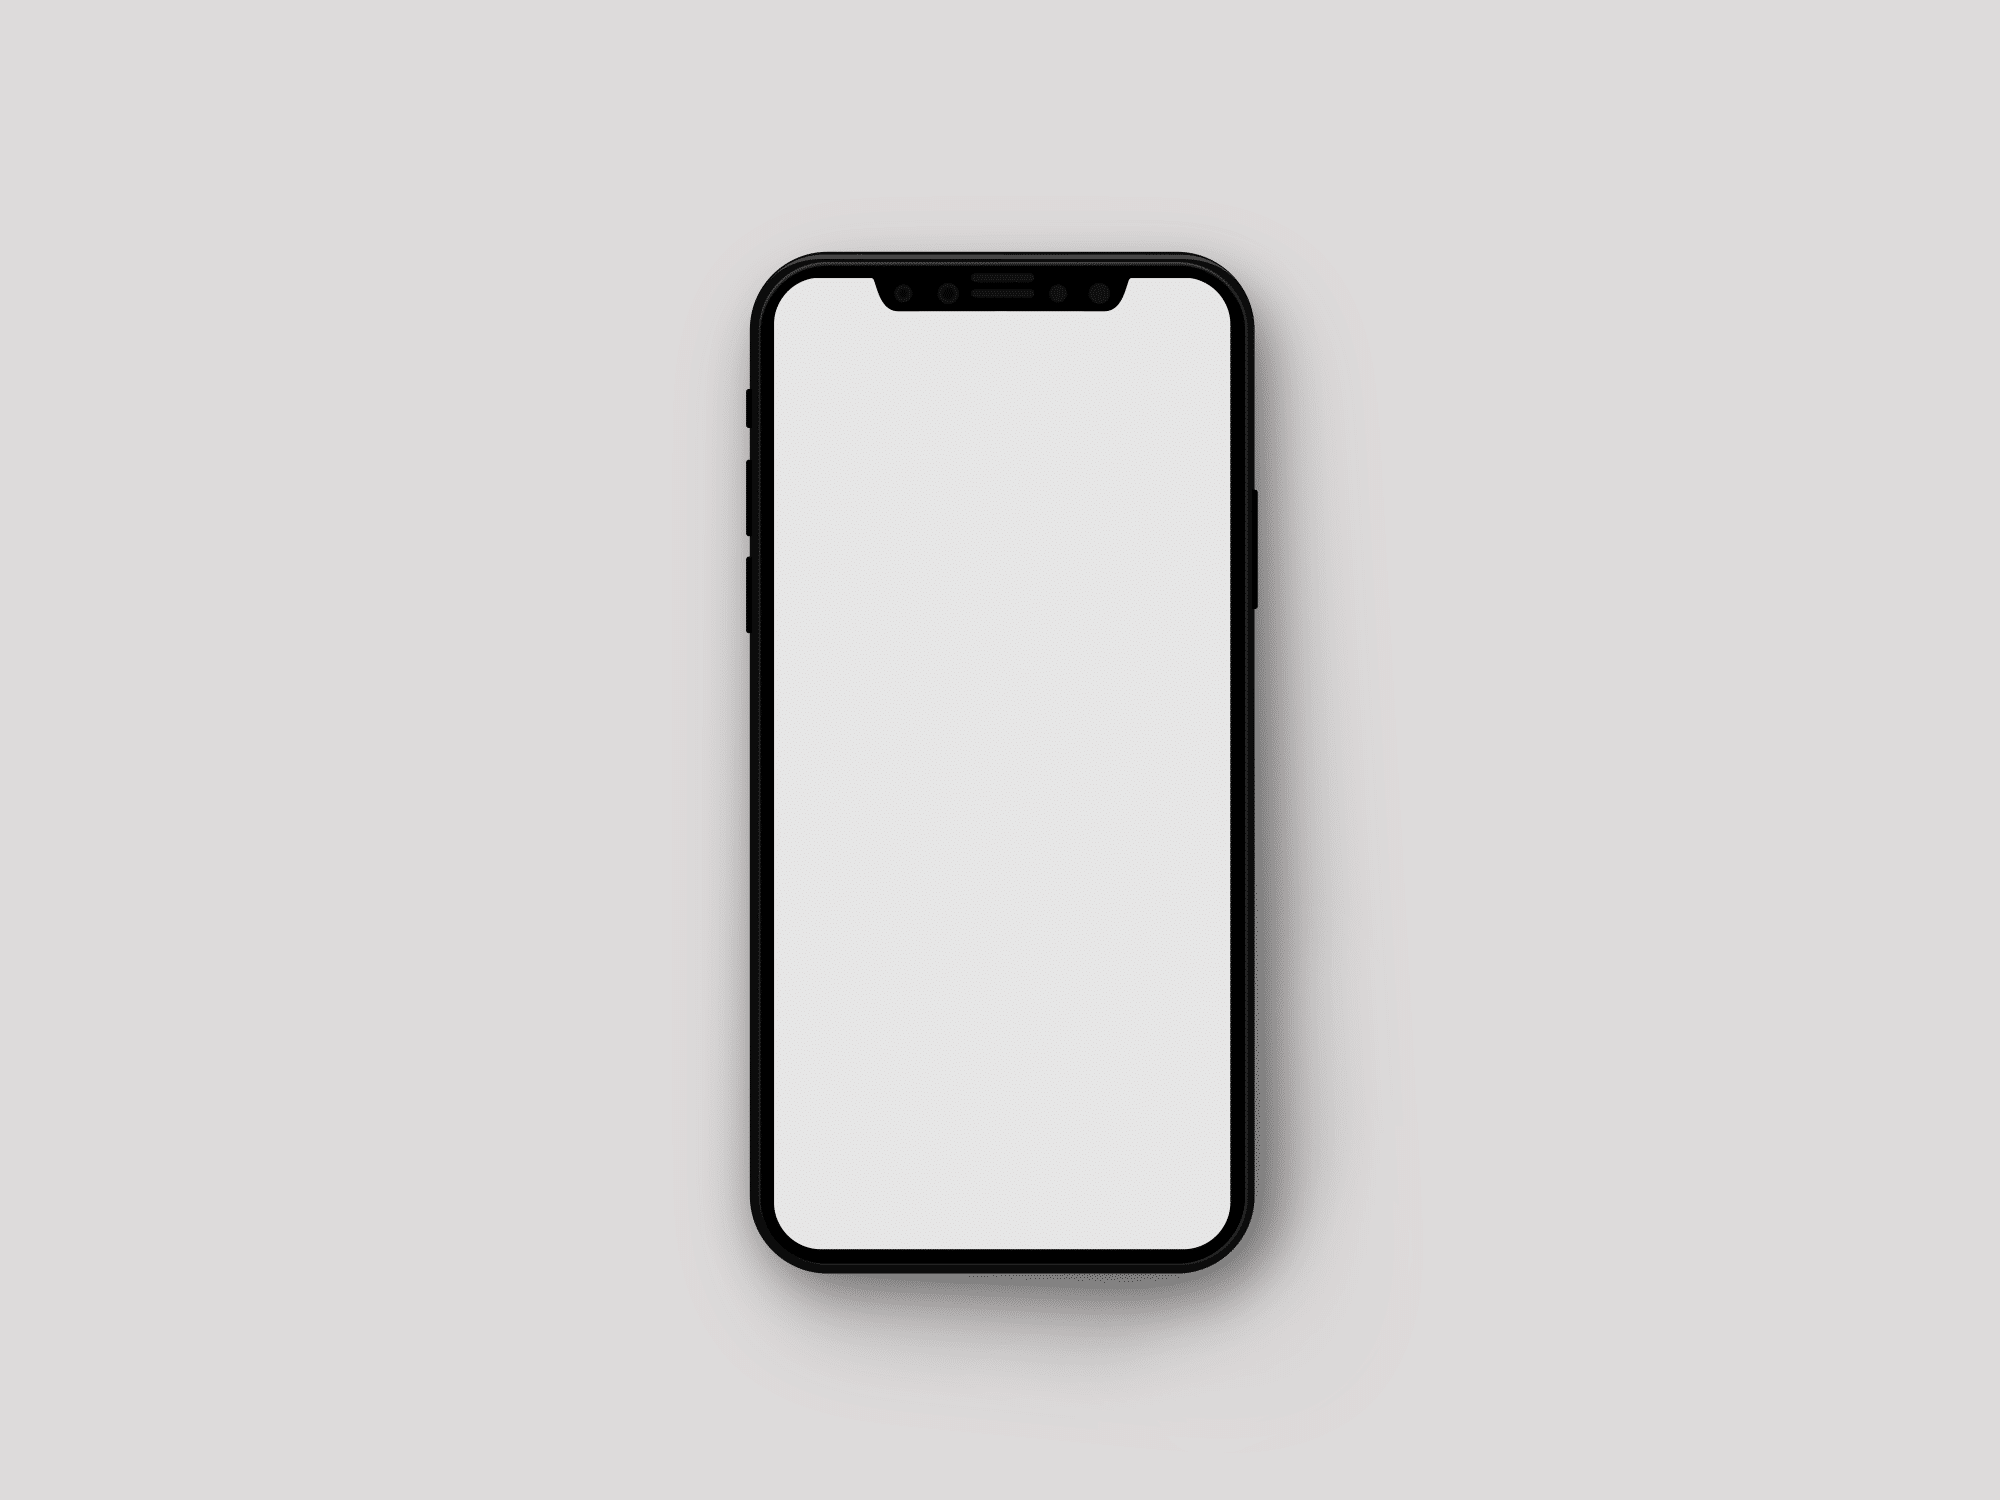 Minimalistic Iphone X Mockup The Mockup Club